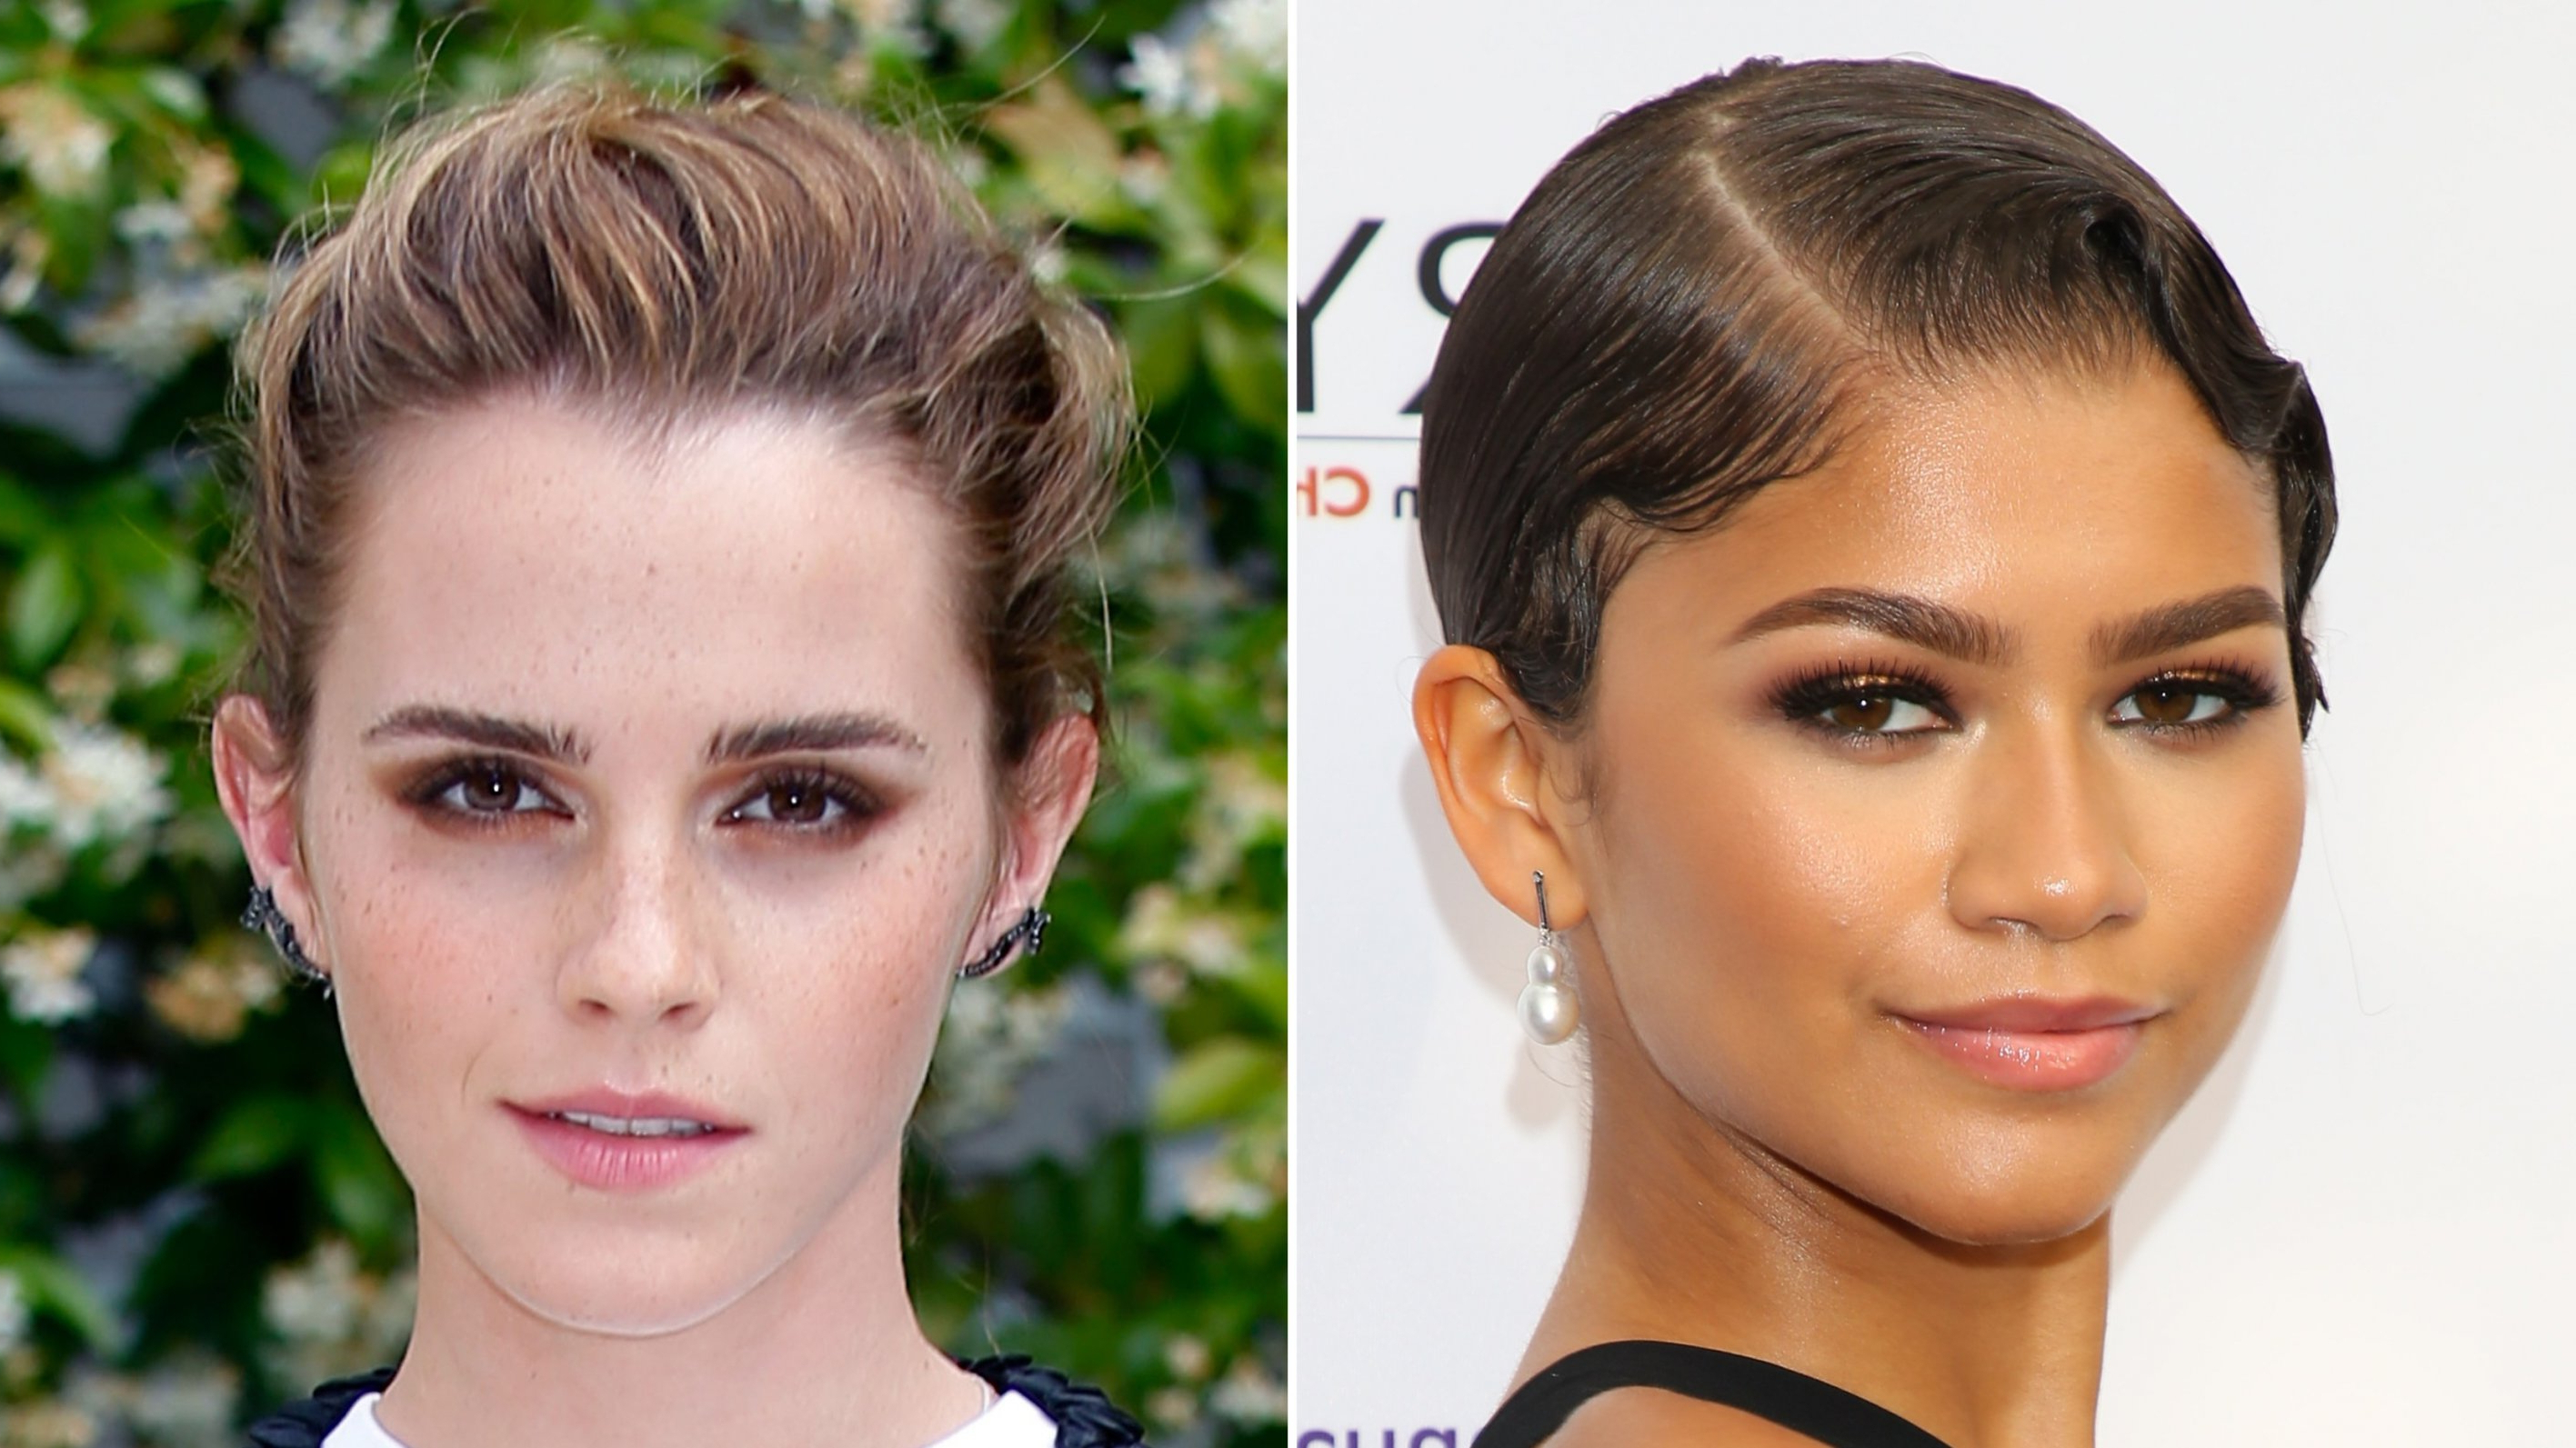 Wedding Guest Hairstyles For Short Hair » Best Hairstyles & Haircuts Within Hairstyles For A Wedding Guest With Short Hair (View 23 of 25)